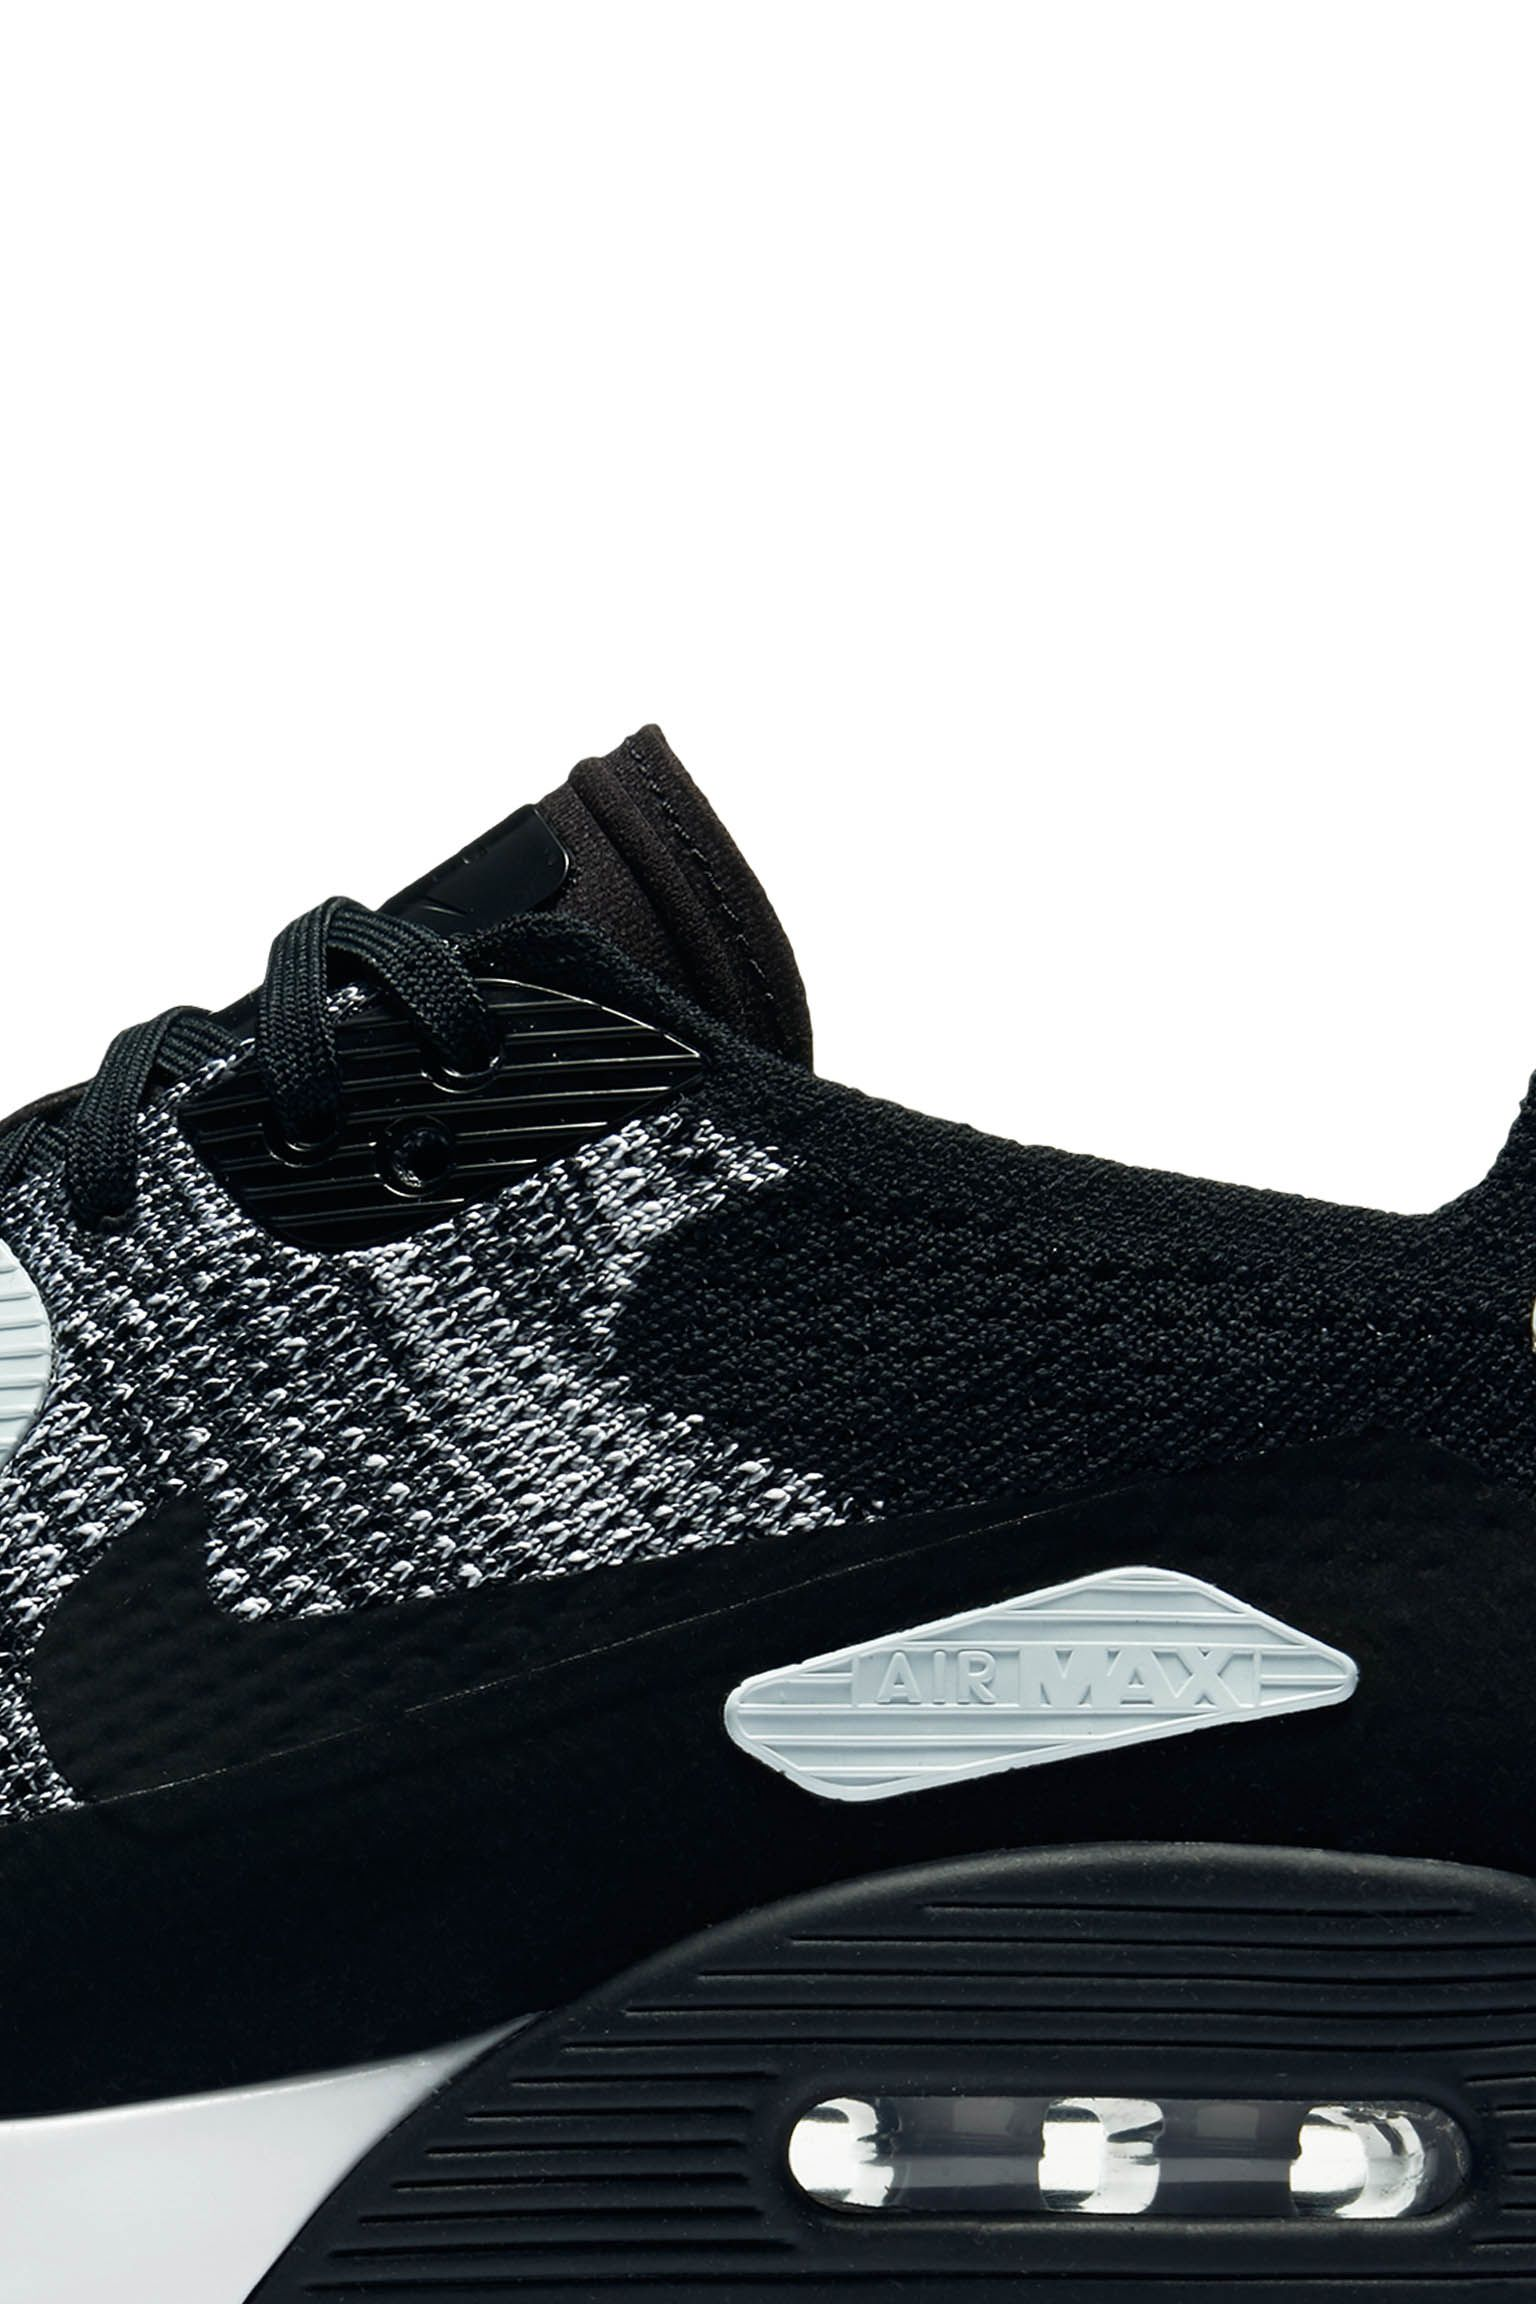 Nike Air Max 90 Ultra 2.0 Flyknit « Black & Anthracite » pour Femme